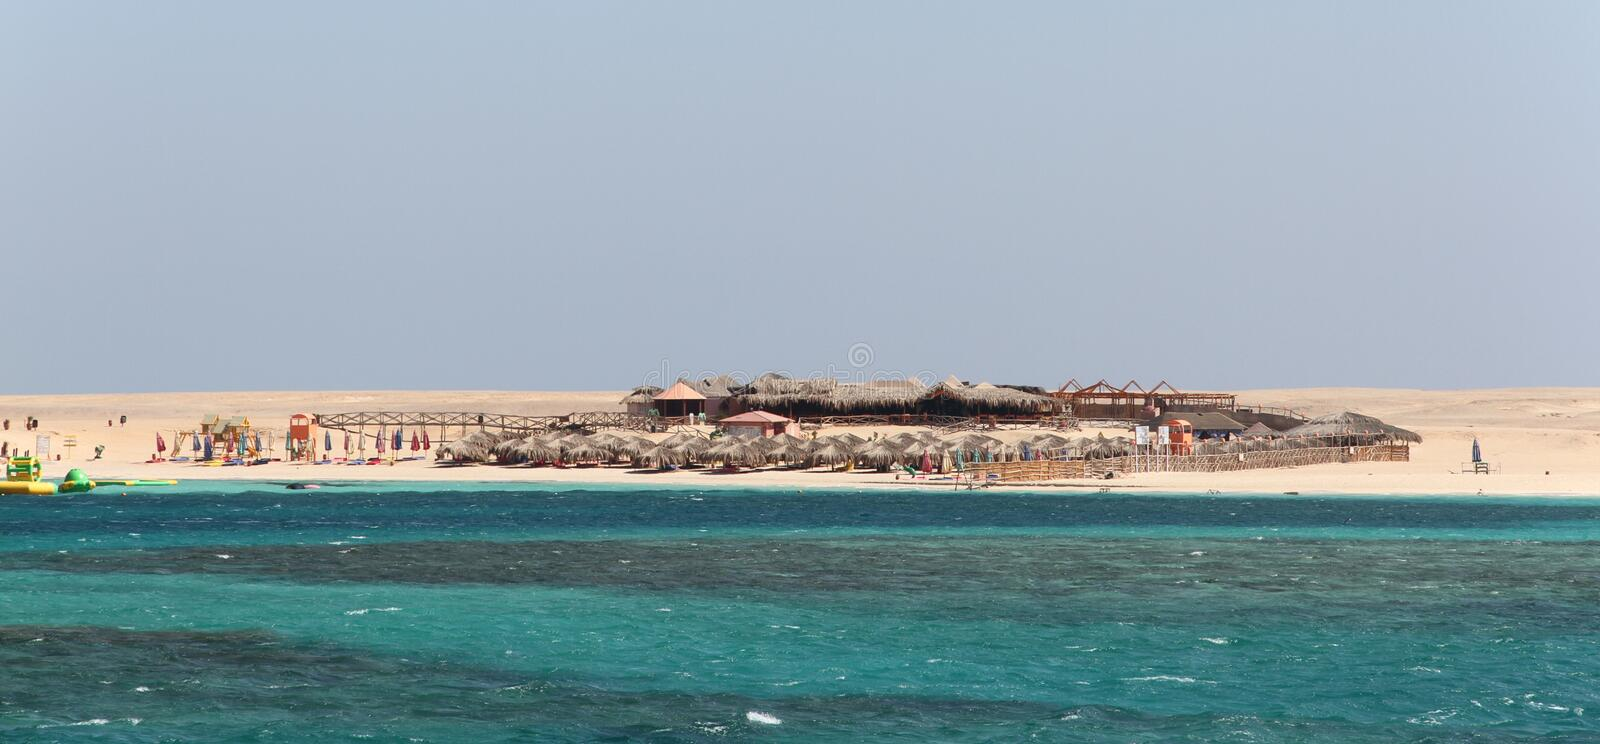 The Giftun Islands in Red Sea offshore near Hurghada, stock images